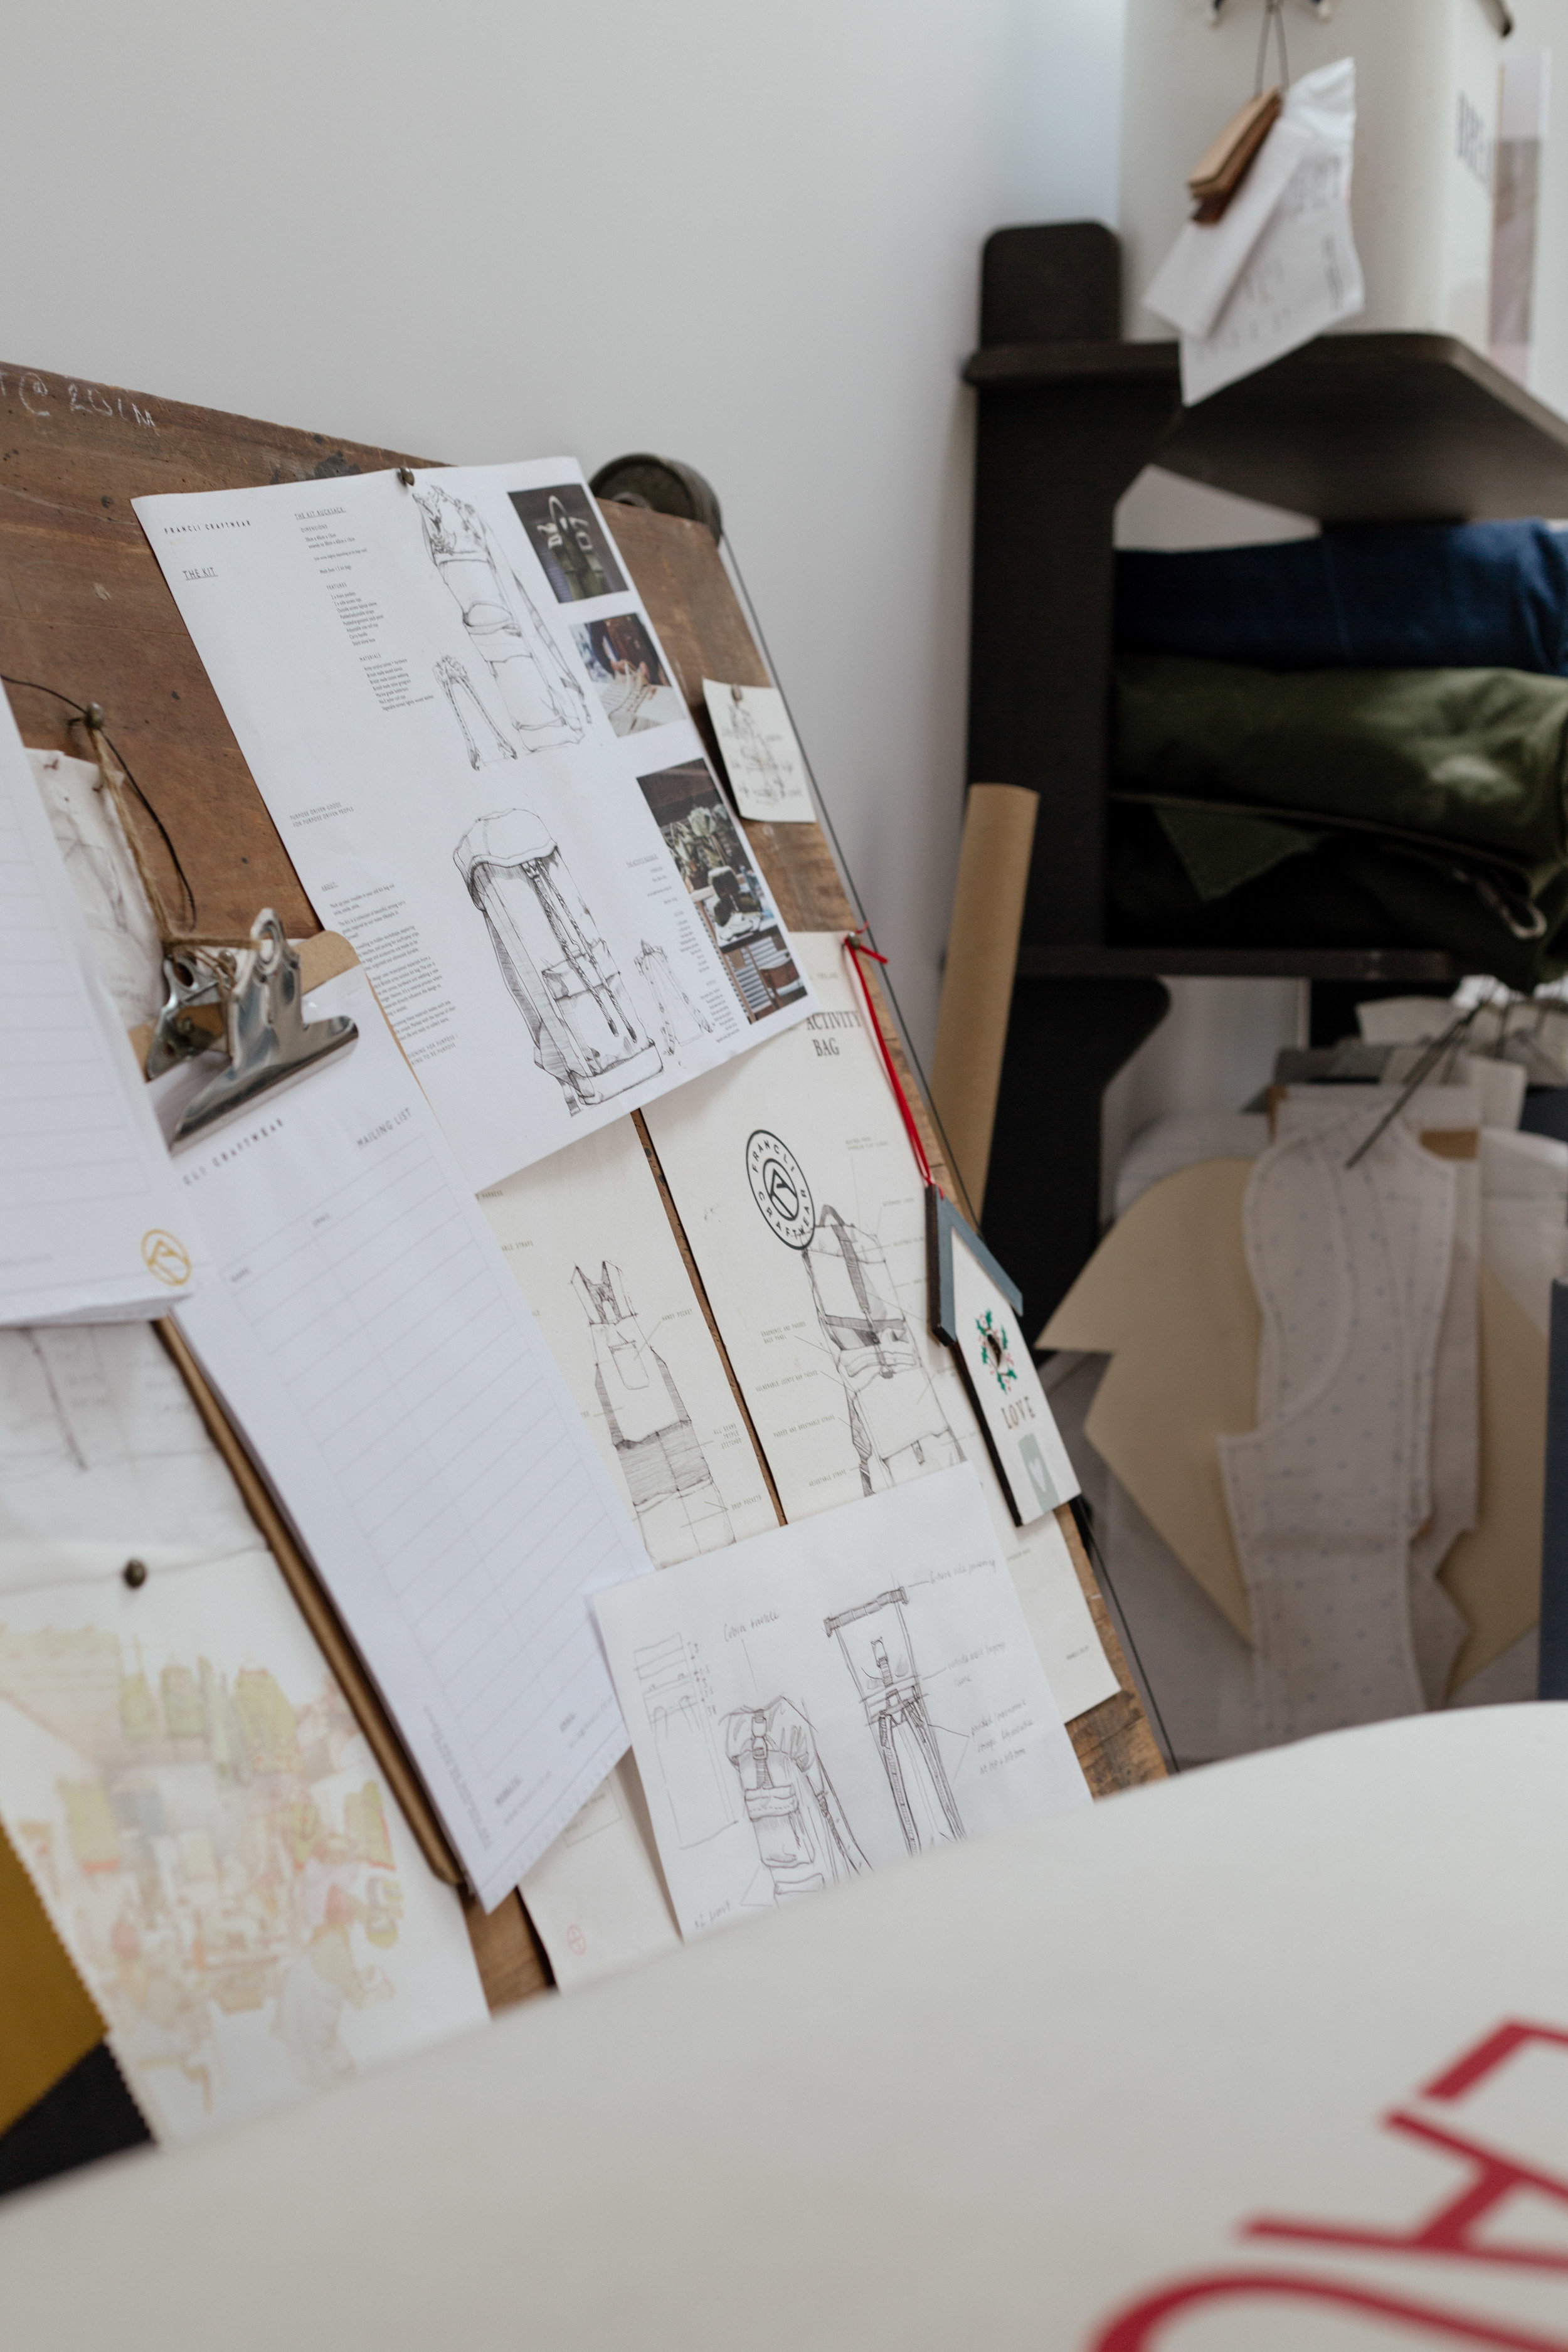 Sketches pinned to a drafting table in Francli Craftwear's workshop at Argal Home Farm.